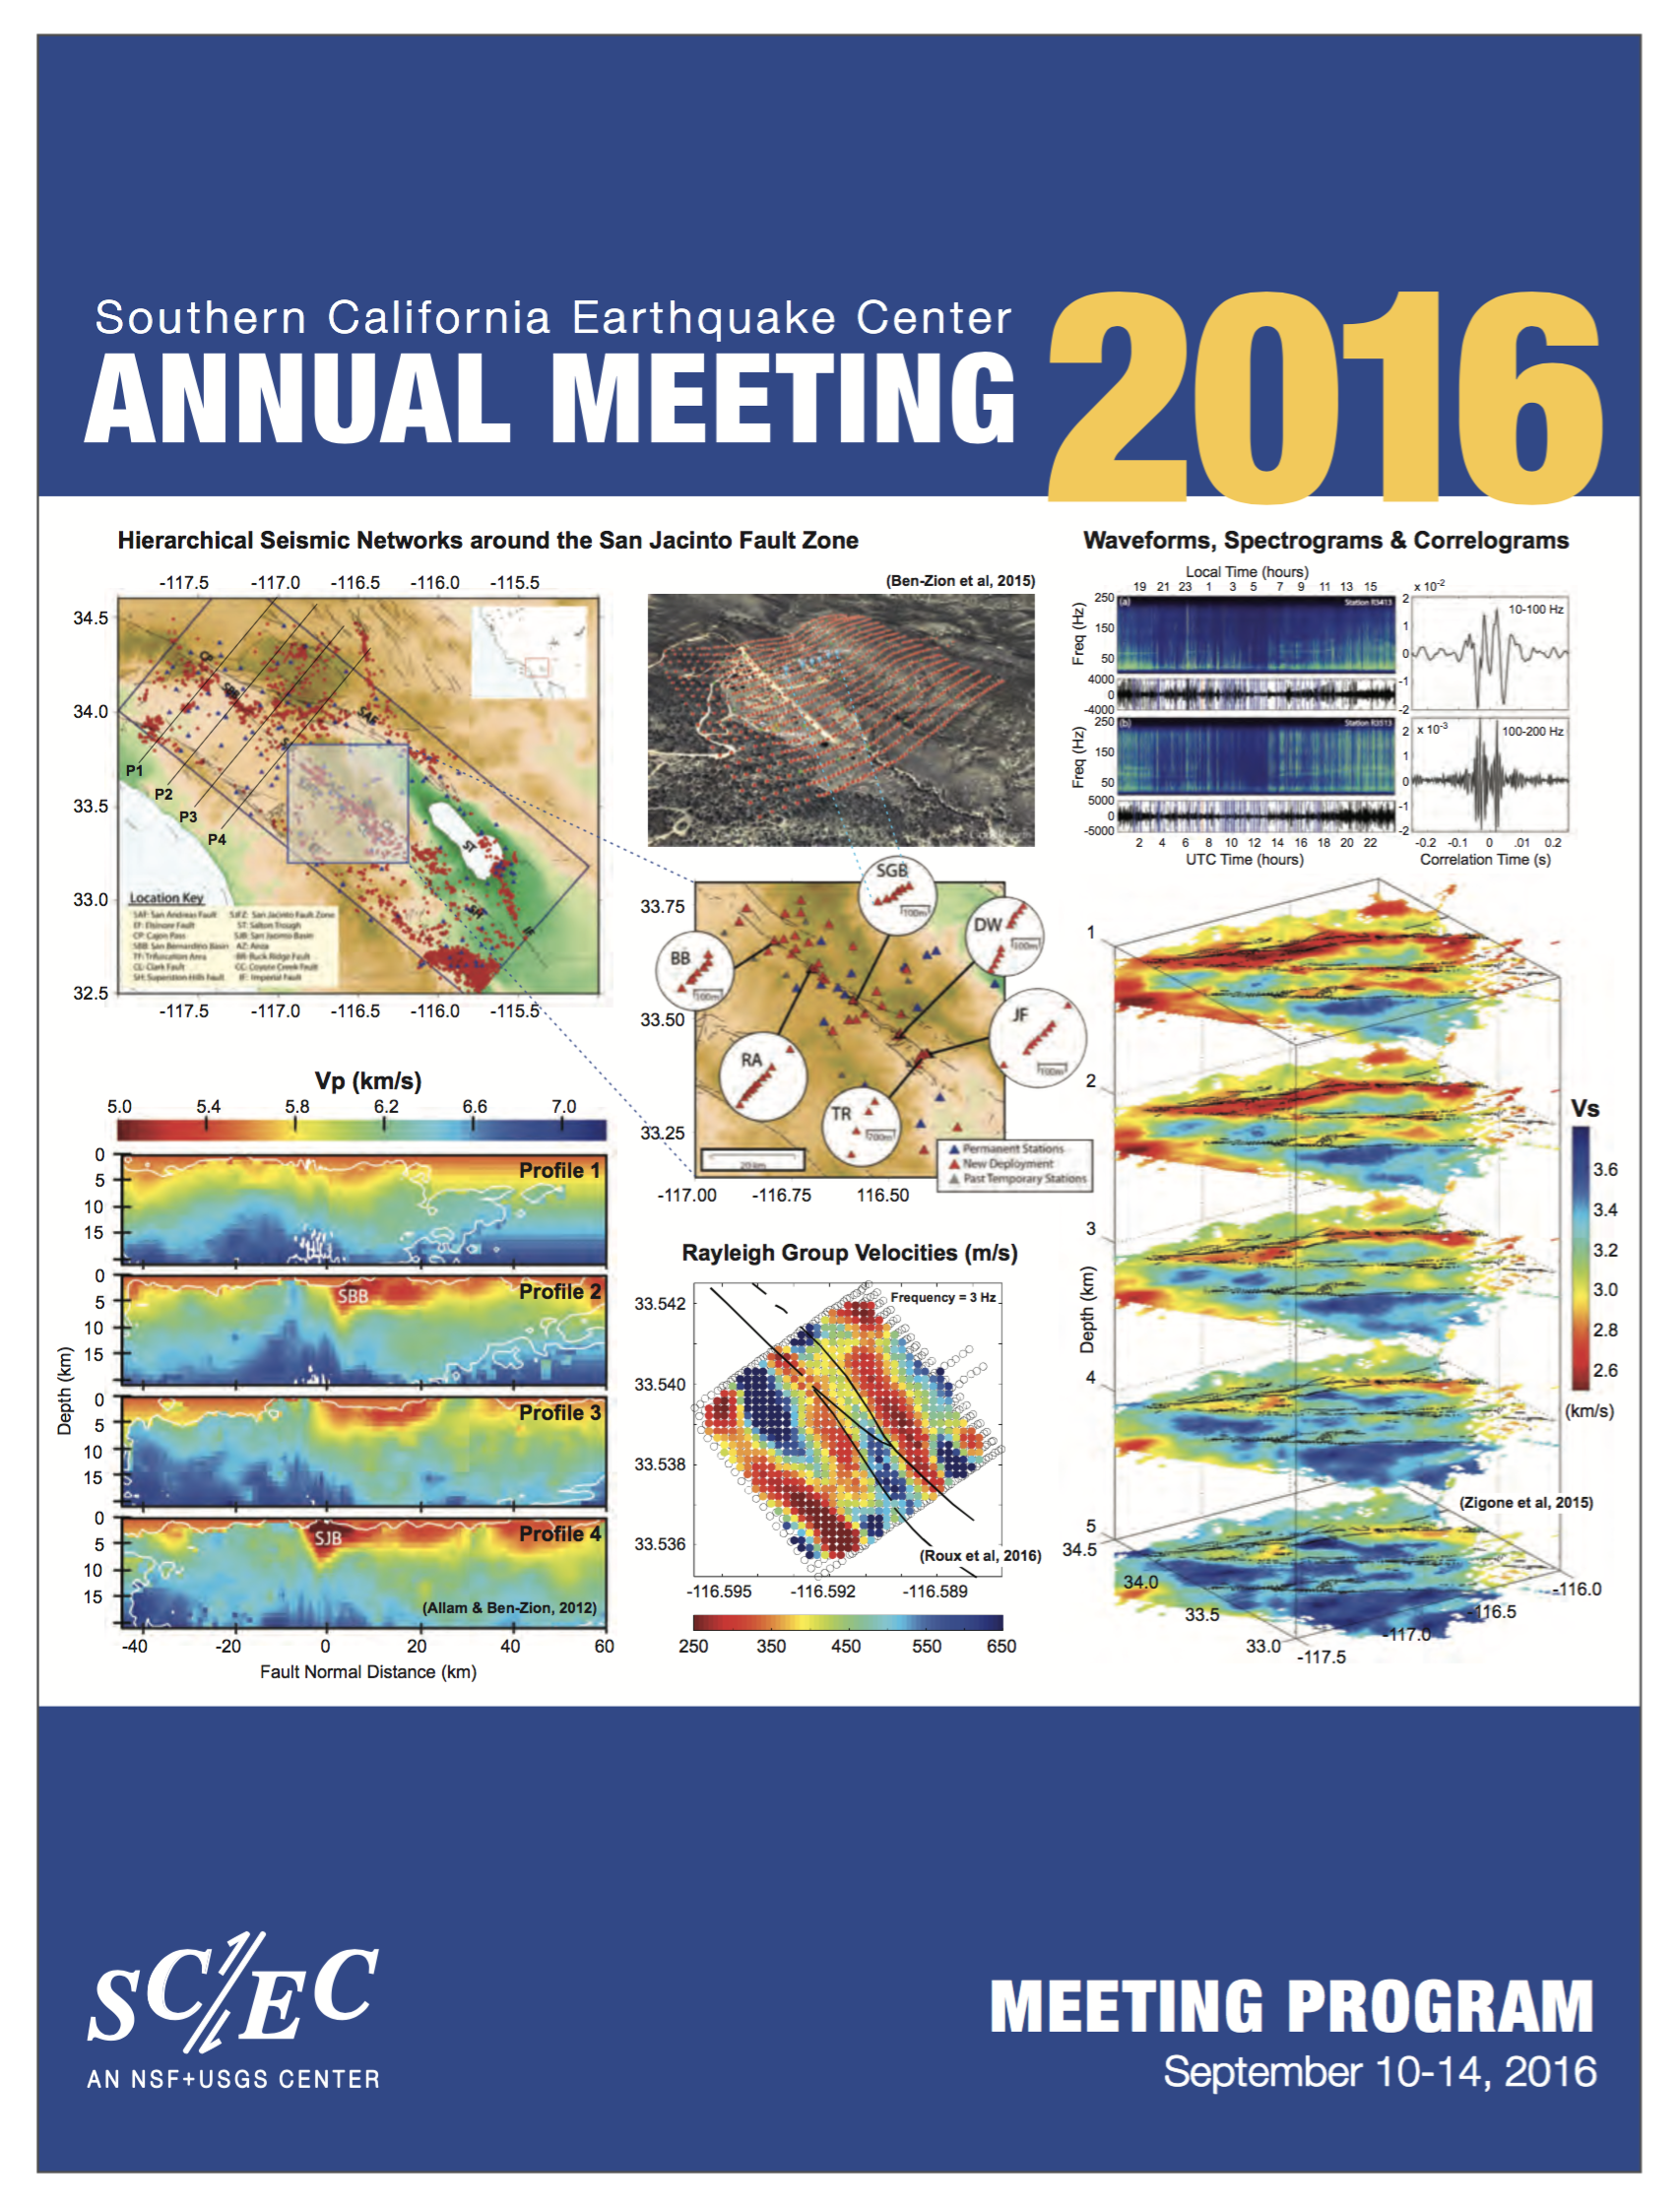 2016 SCEC Annual Meeting | Southern California Earthquake Center